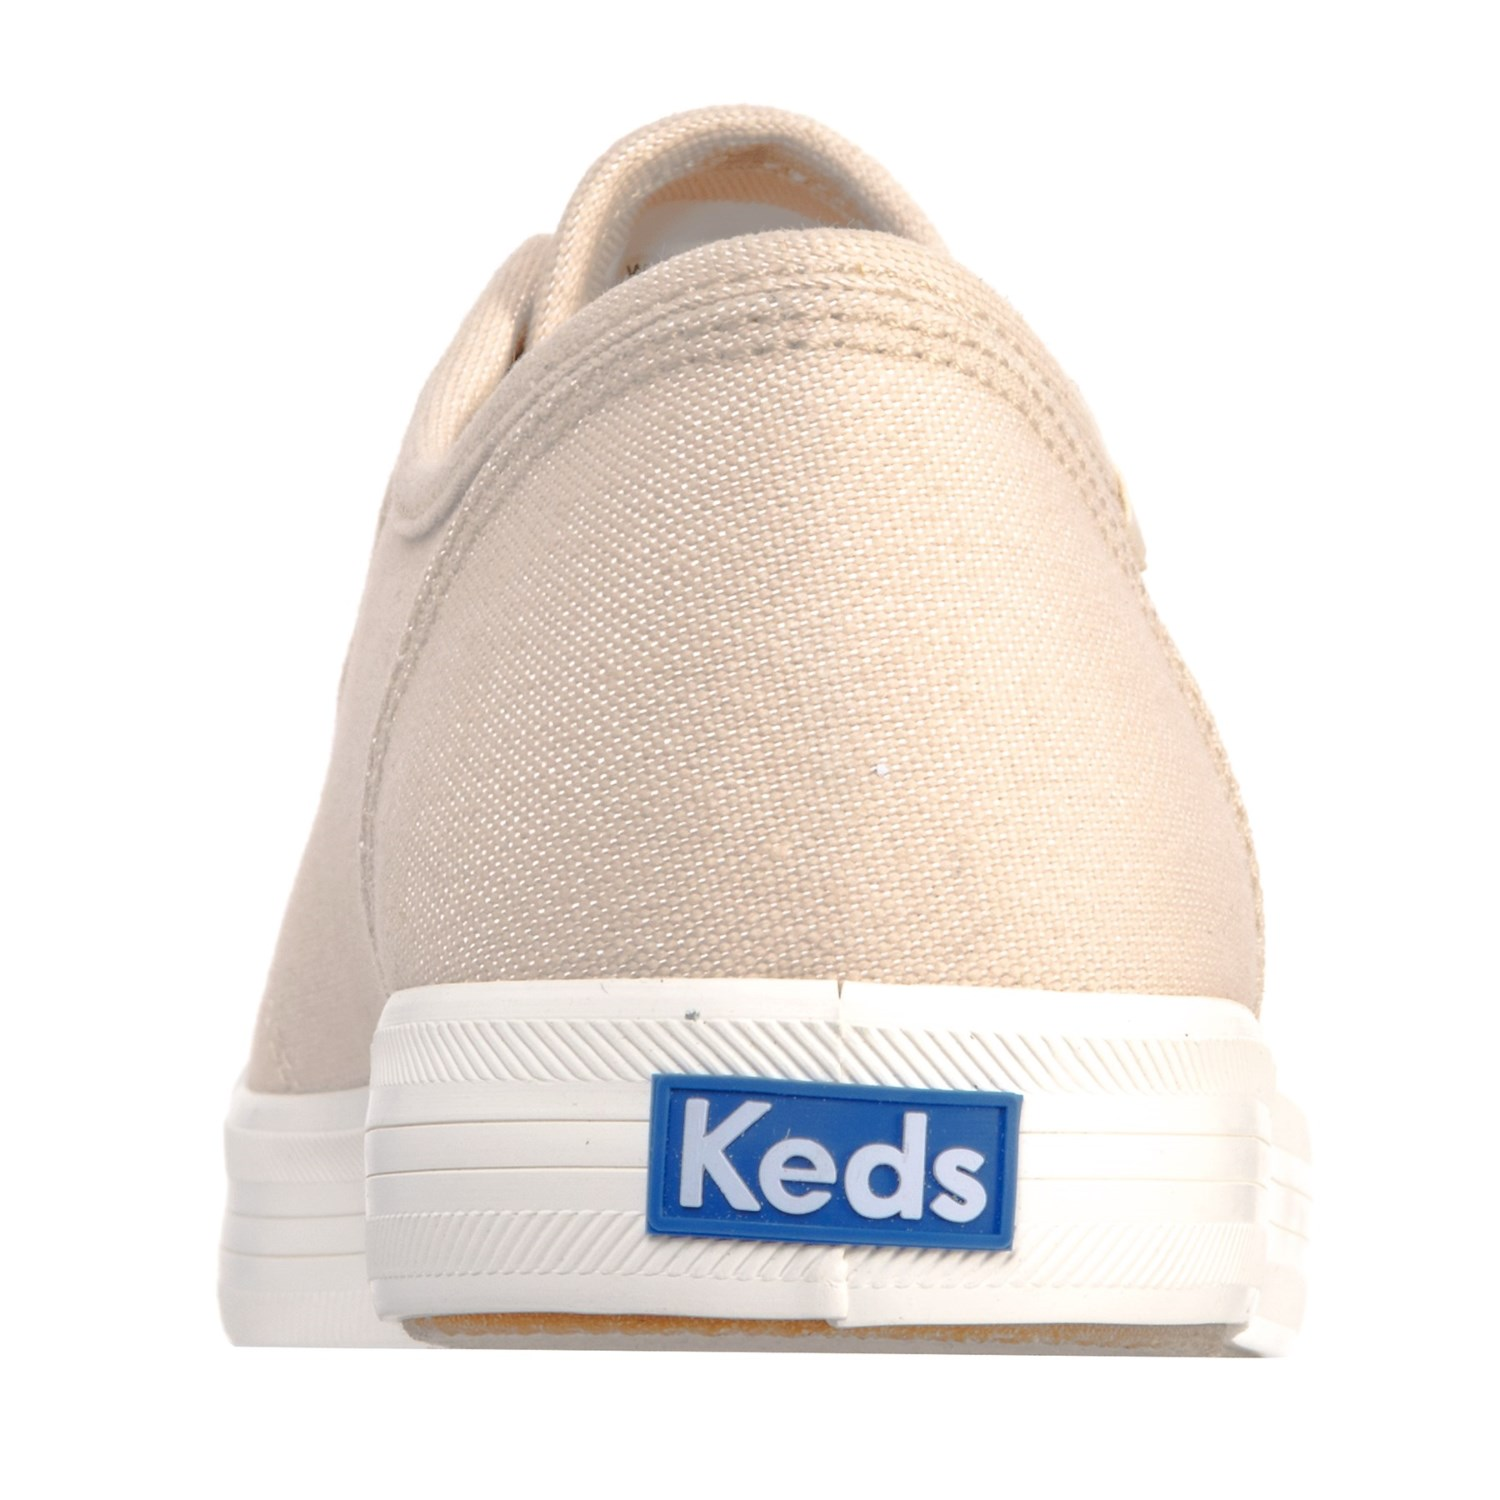 a2ceb0b25d6 Keds Kickstart Shimmer Chambray Sneakers (For Women) - Save 45%